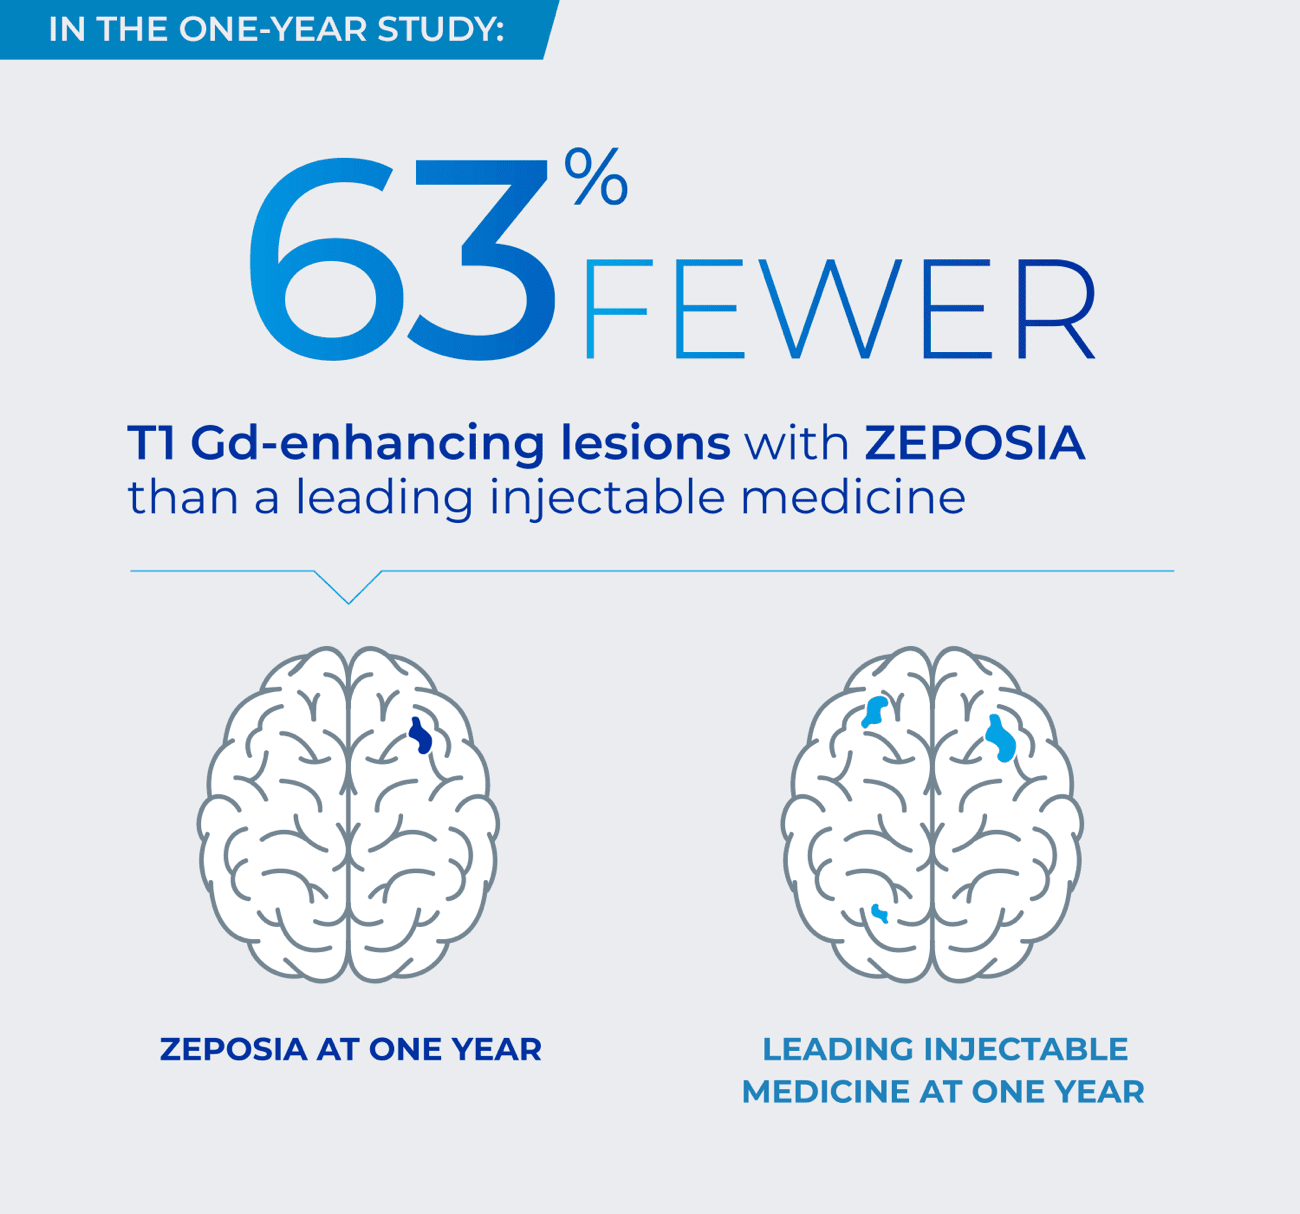 In a one-year study: 63% fewer T1 Gd-enhancing lesions with ZEPOSIA than a leading injectable medicine